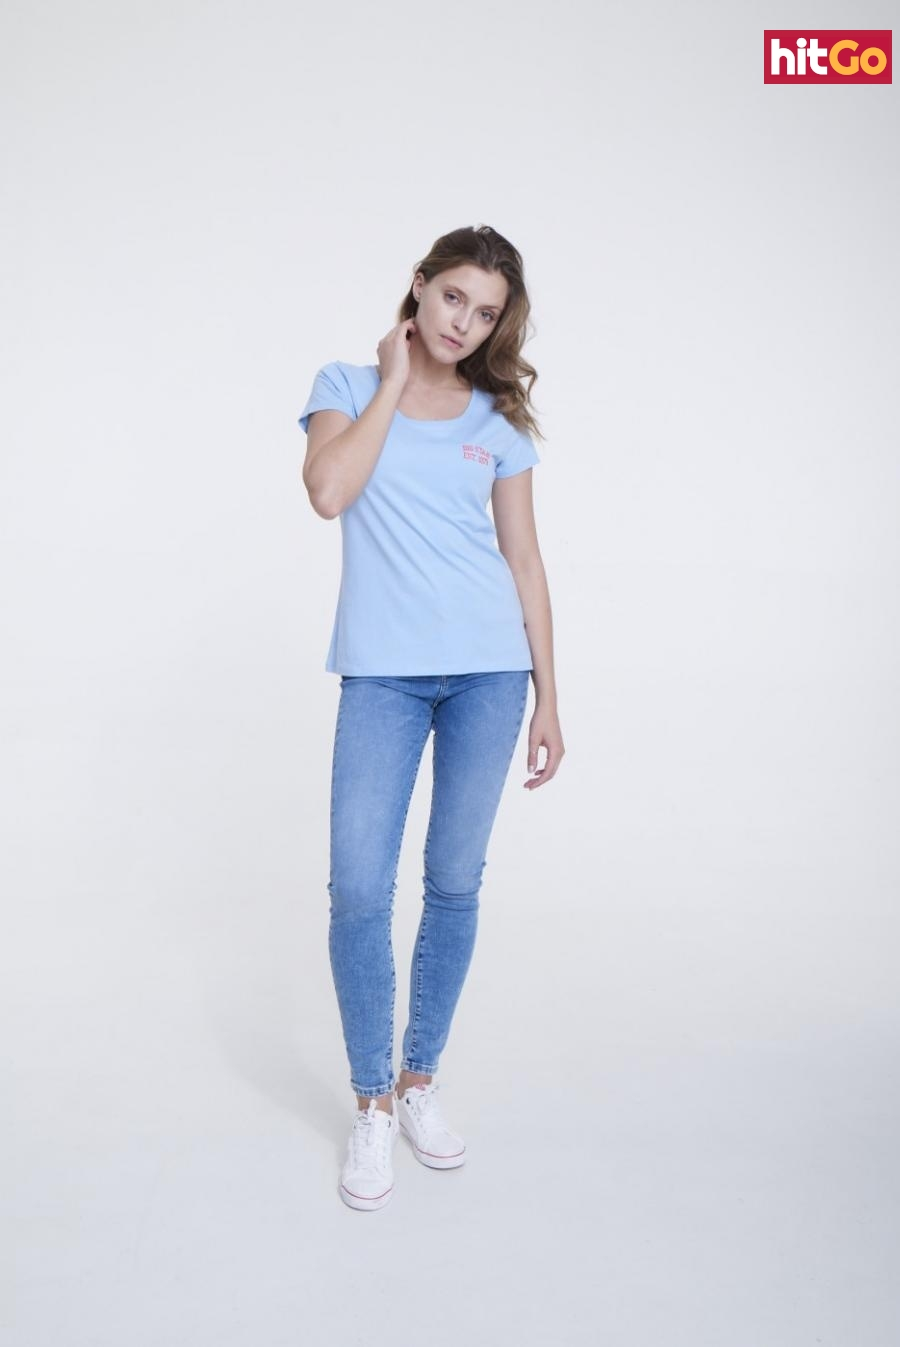 Big Star Womans Shortsleeve T-shirt 158787 -416 dámské Blue S